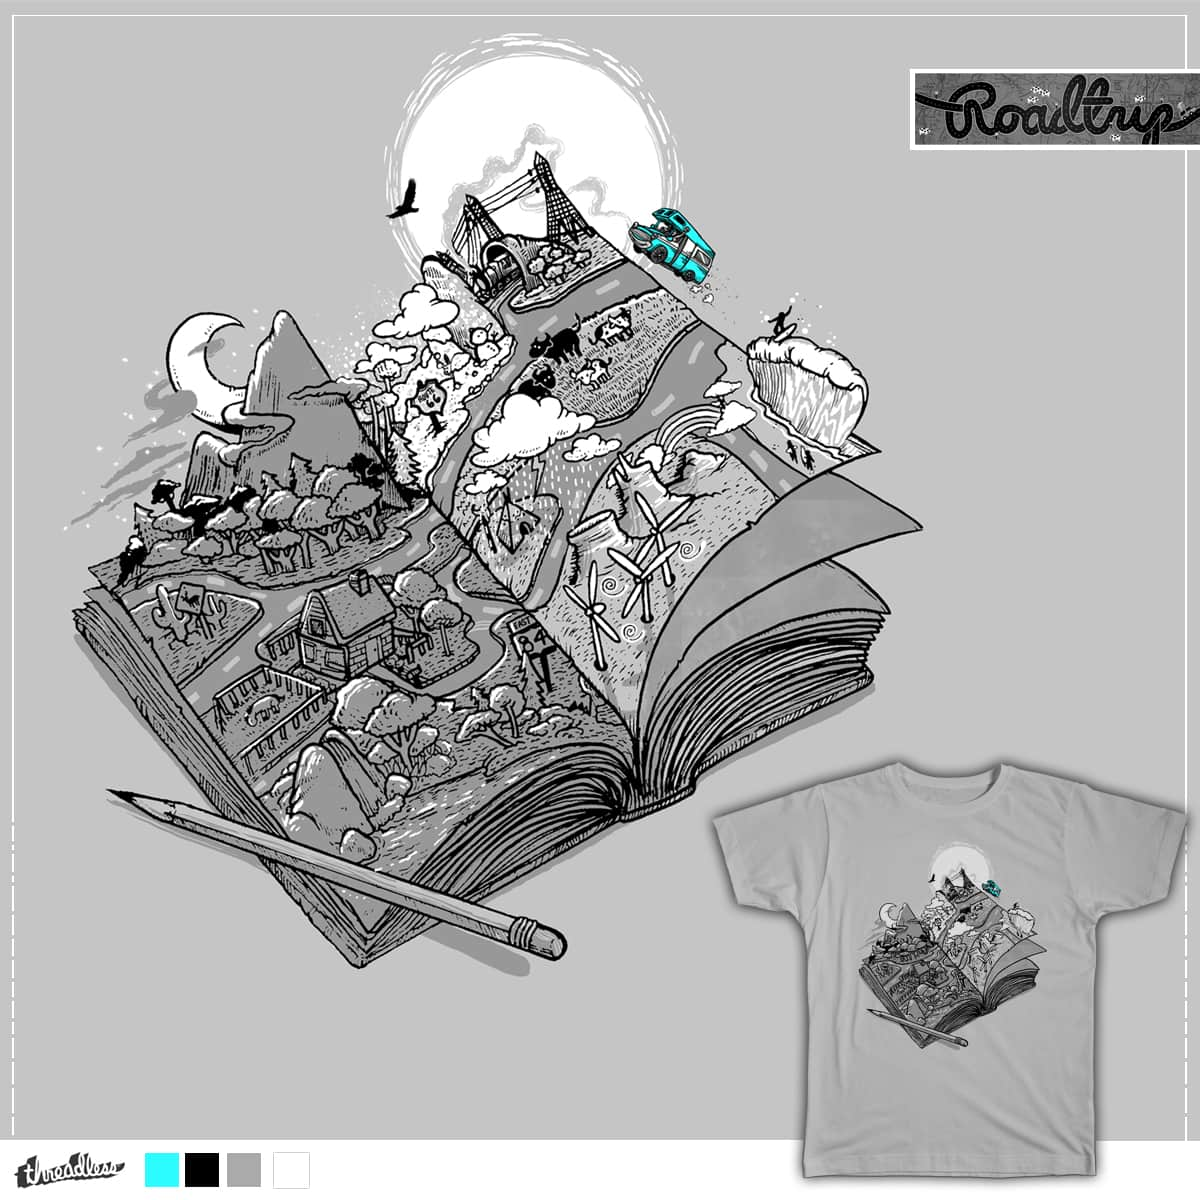 My Road Trip Journal  by anwarrafiee on Threadless